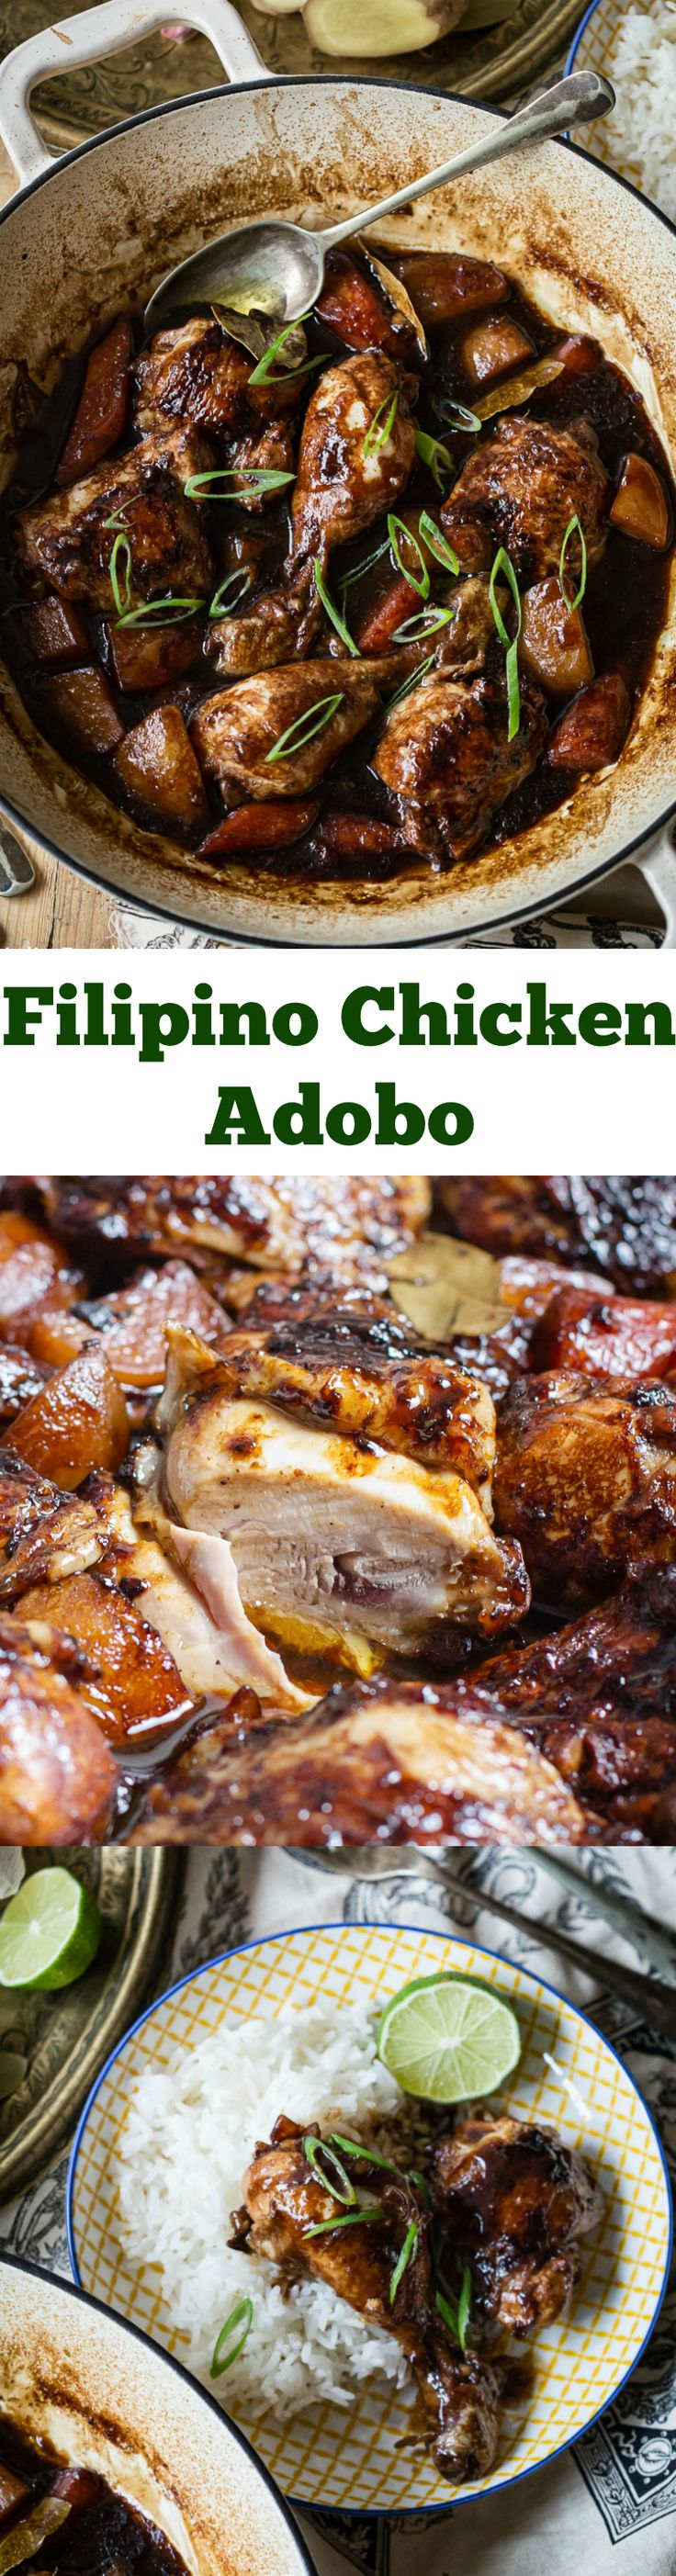 My FAVORITE Recipes: Filipino Chicken Adobo - Vikalinka